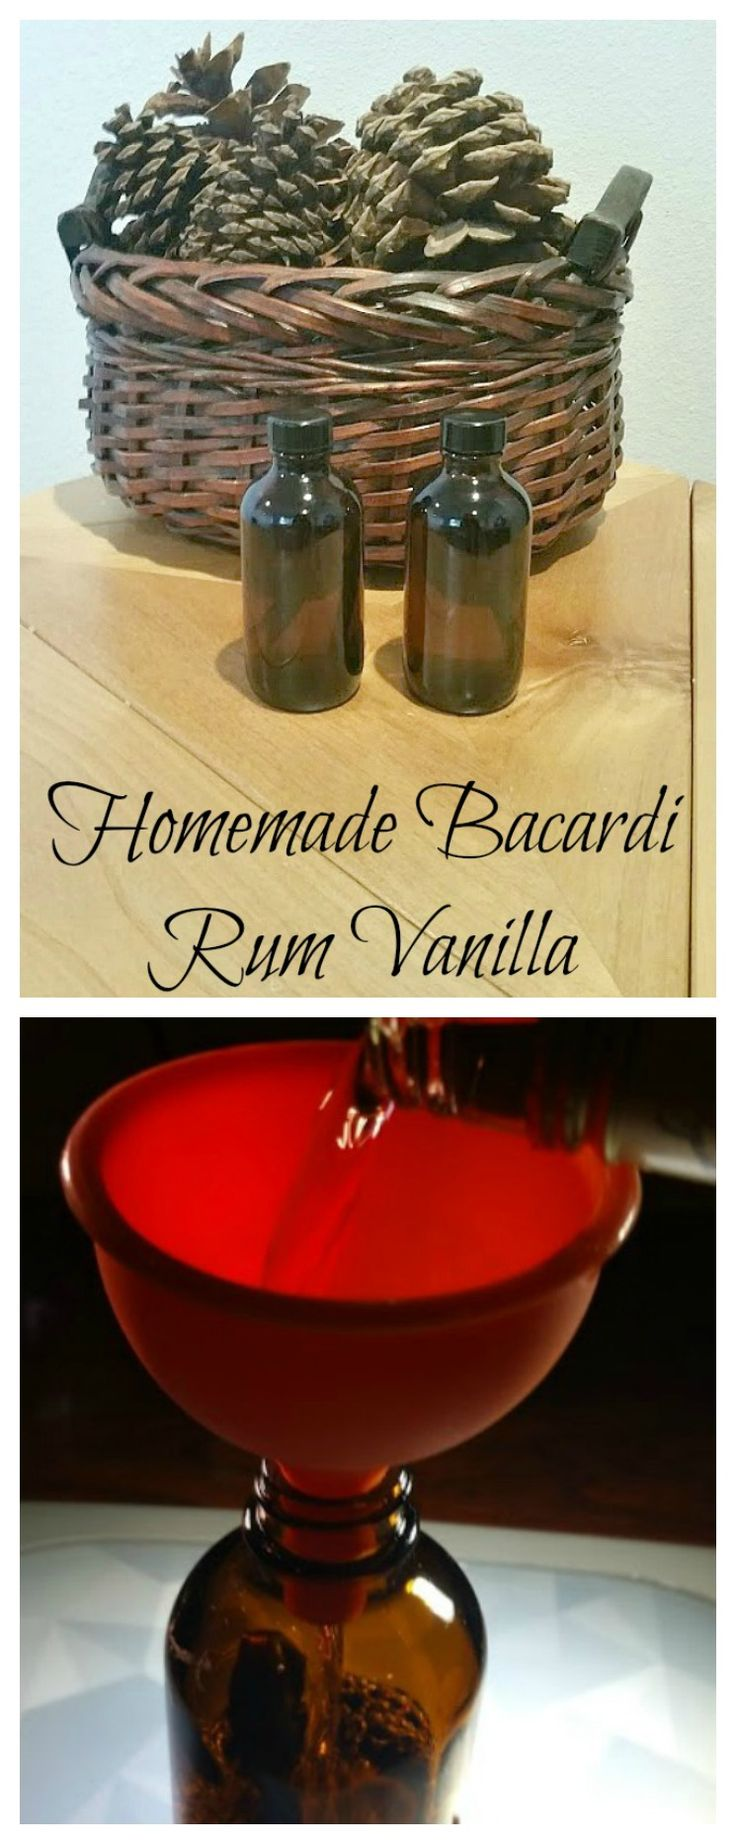 This homemade Bacardi Rum vanilla is a DIY homemaker's dream. It is wonderful for baking and it only has two ingredients! I'm going to tell you how you can make it. It's made with Madagascar vanilla beans!